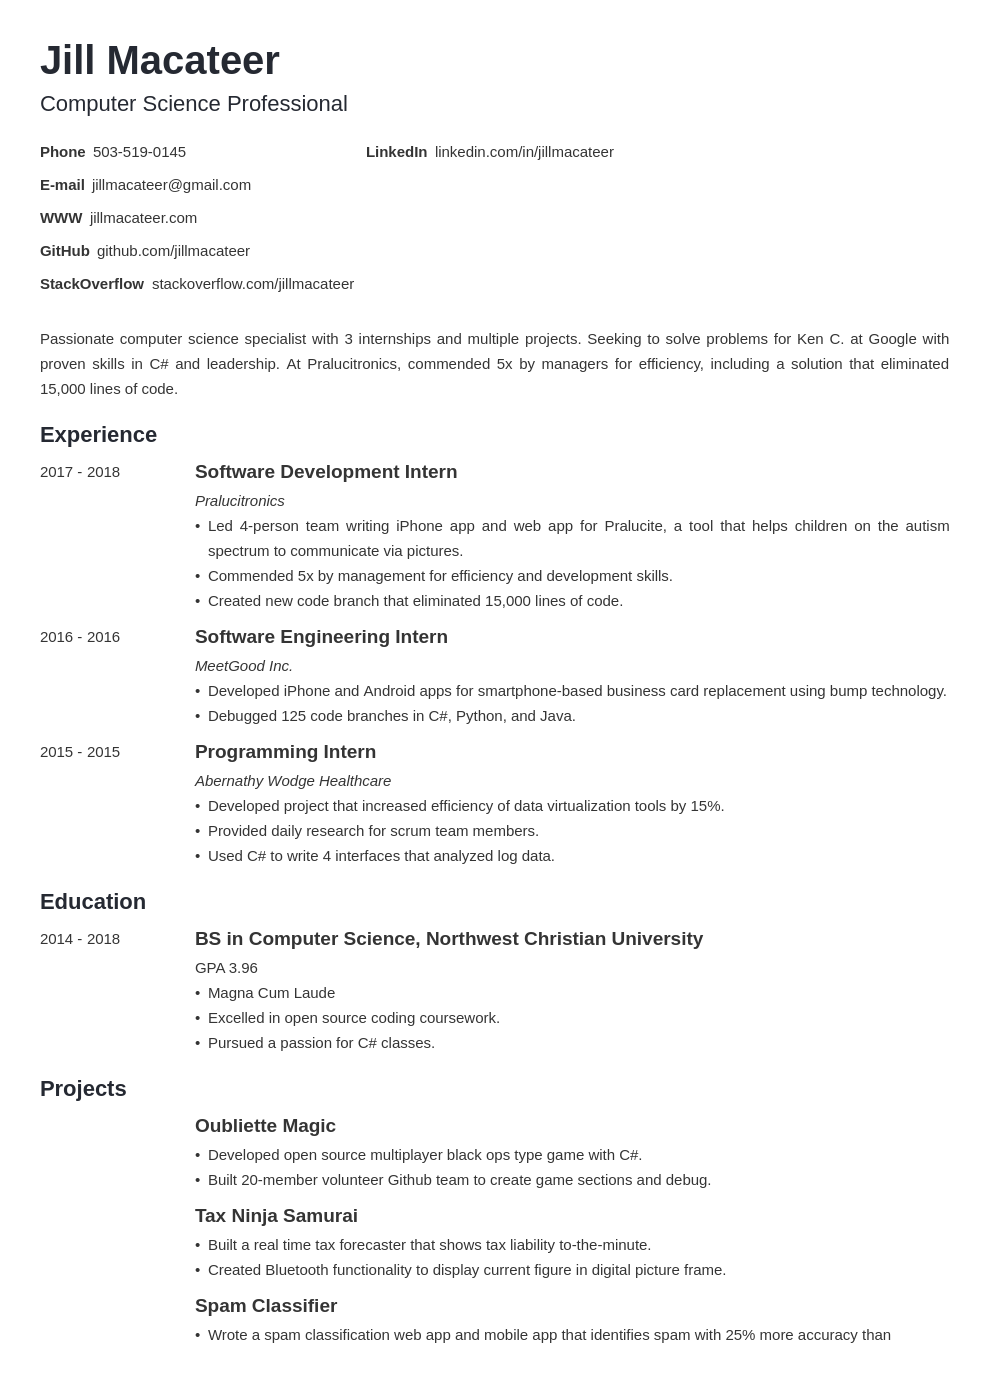 Computer Science Student Resume from cdn-images.resumelab.com